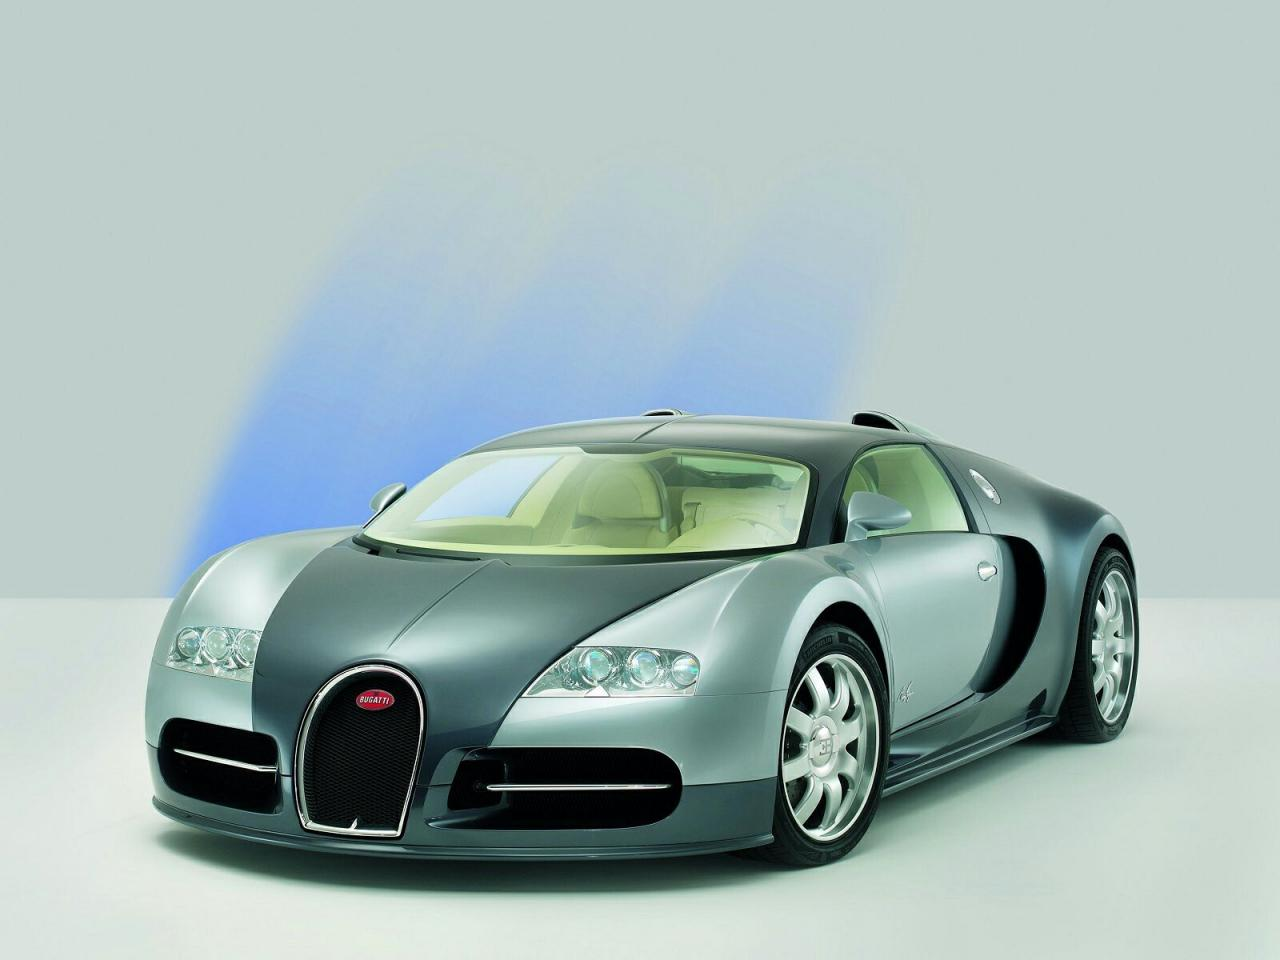 cars Bugatti wallpaper Gallery Free